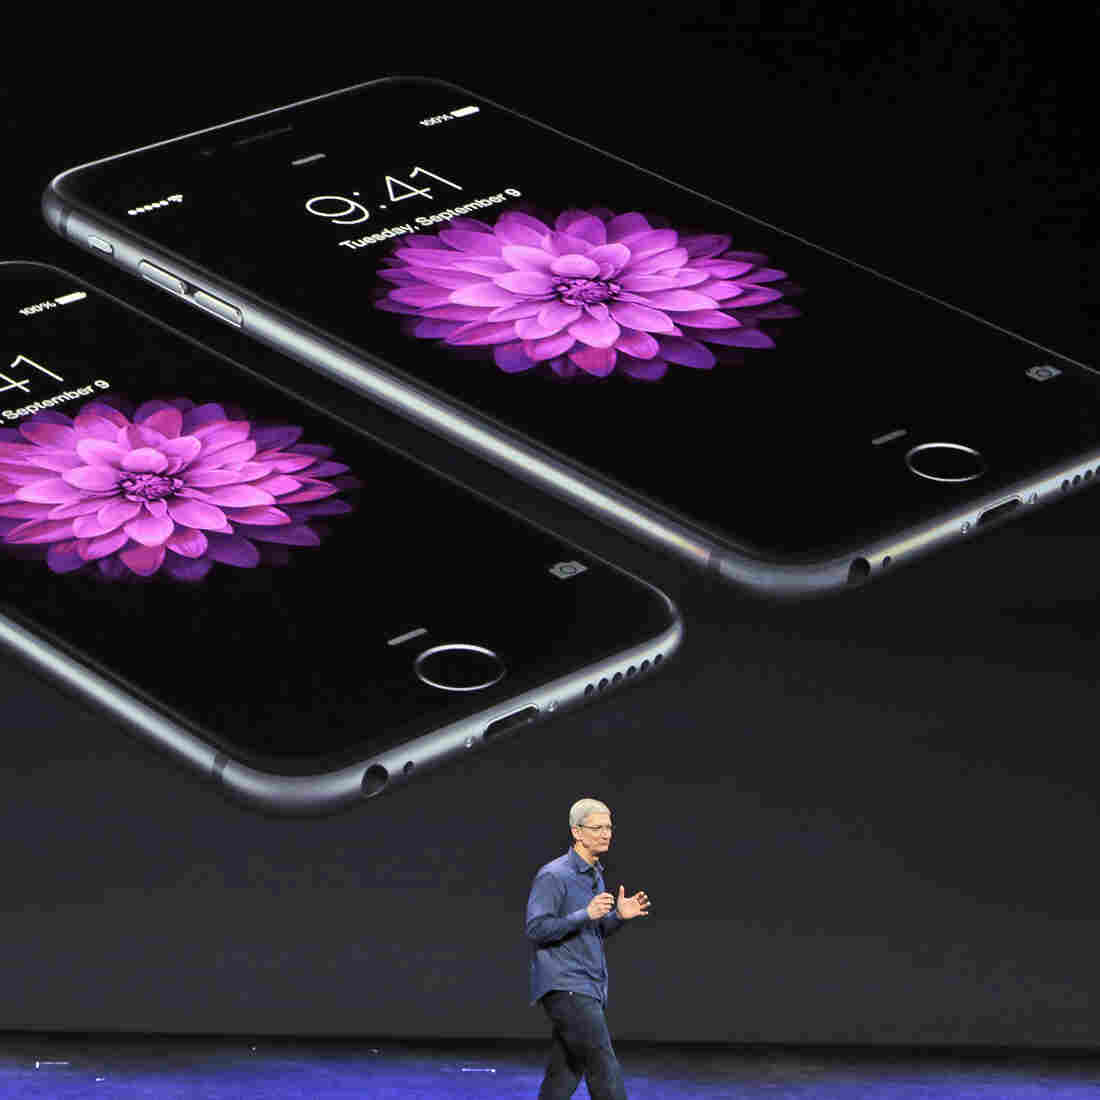 Apple's Success Continues Under Tim Cook, But Steve Jobs Still Looms Large